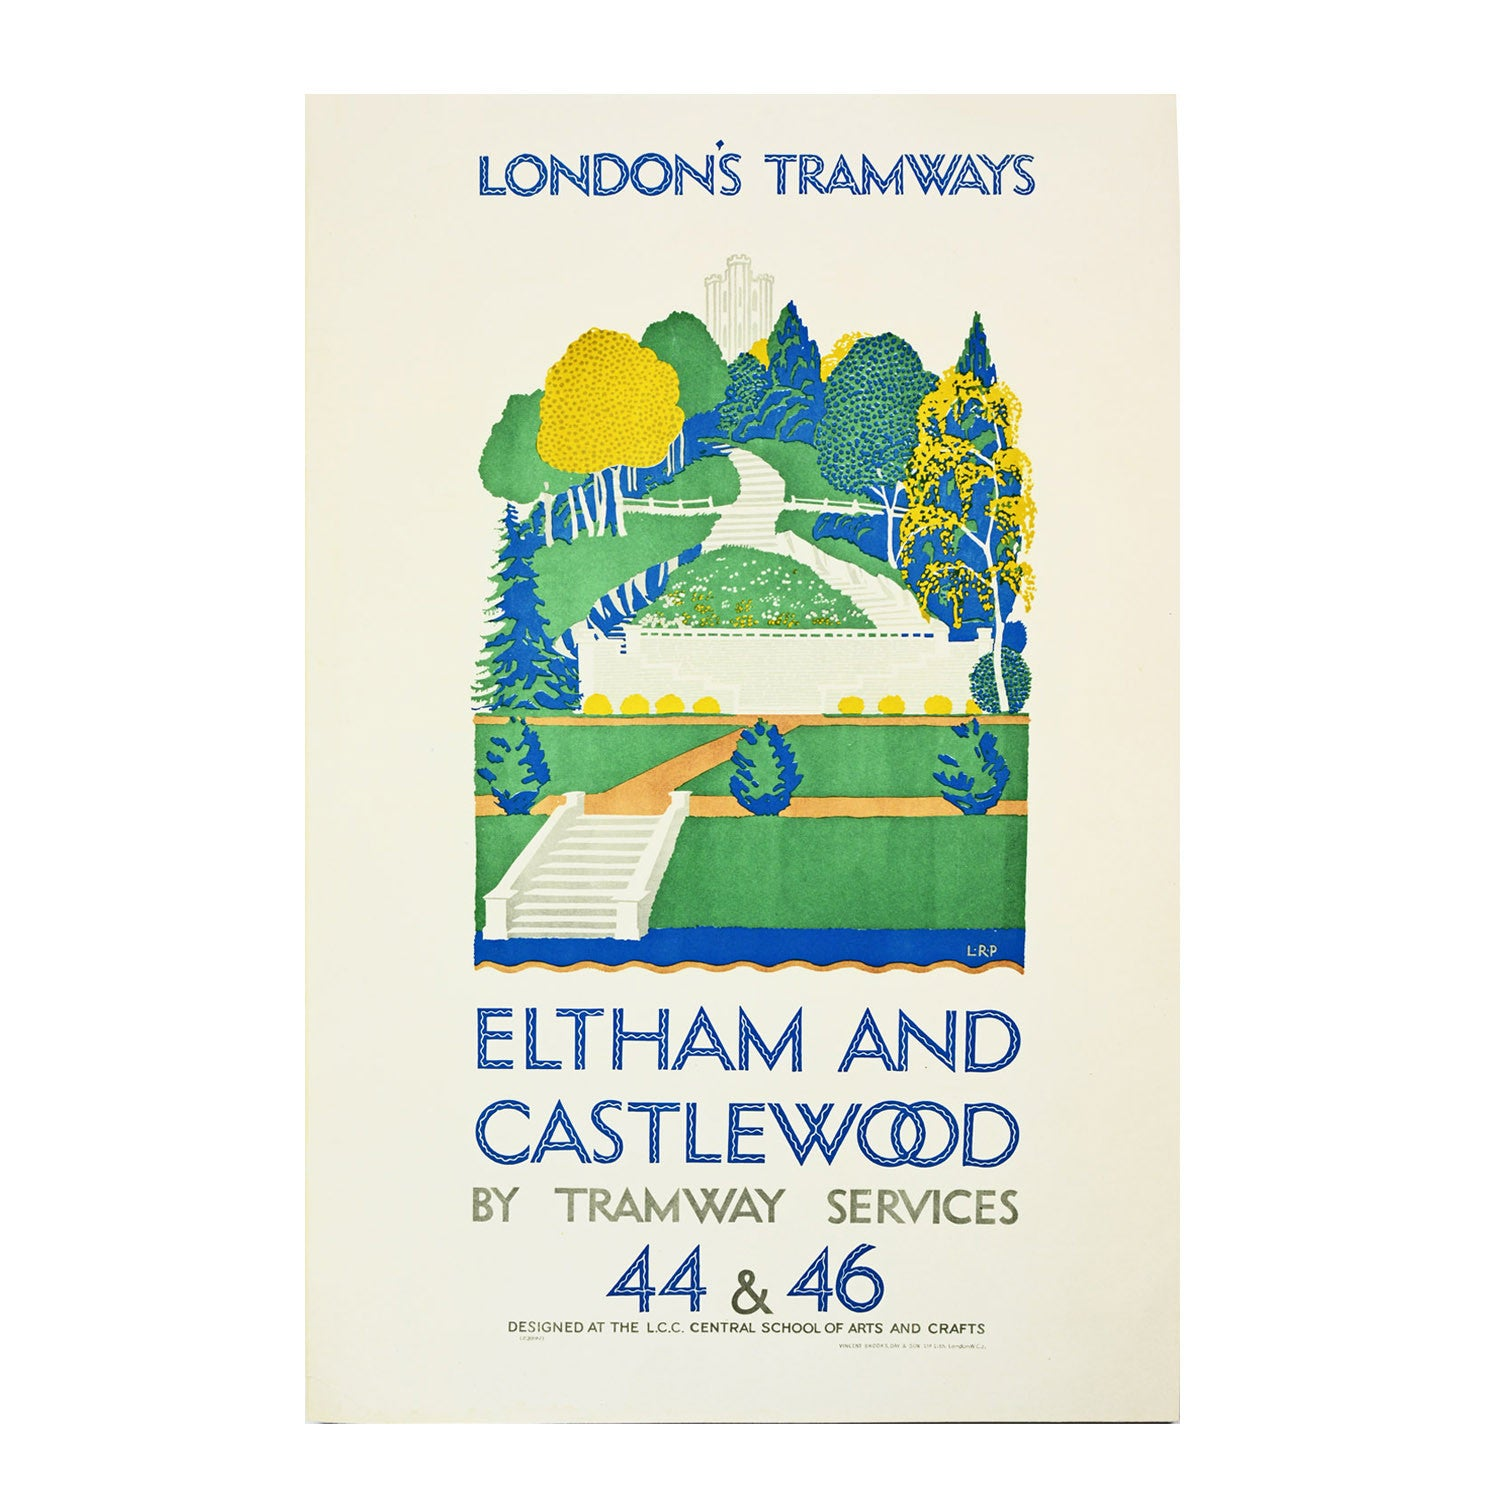 Eltham and Castlewood